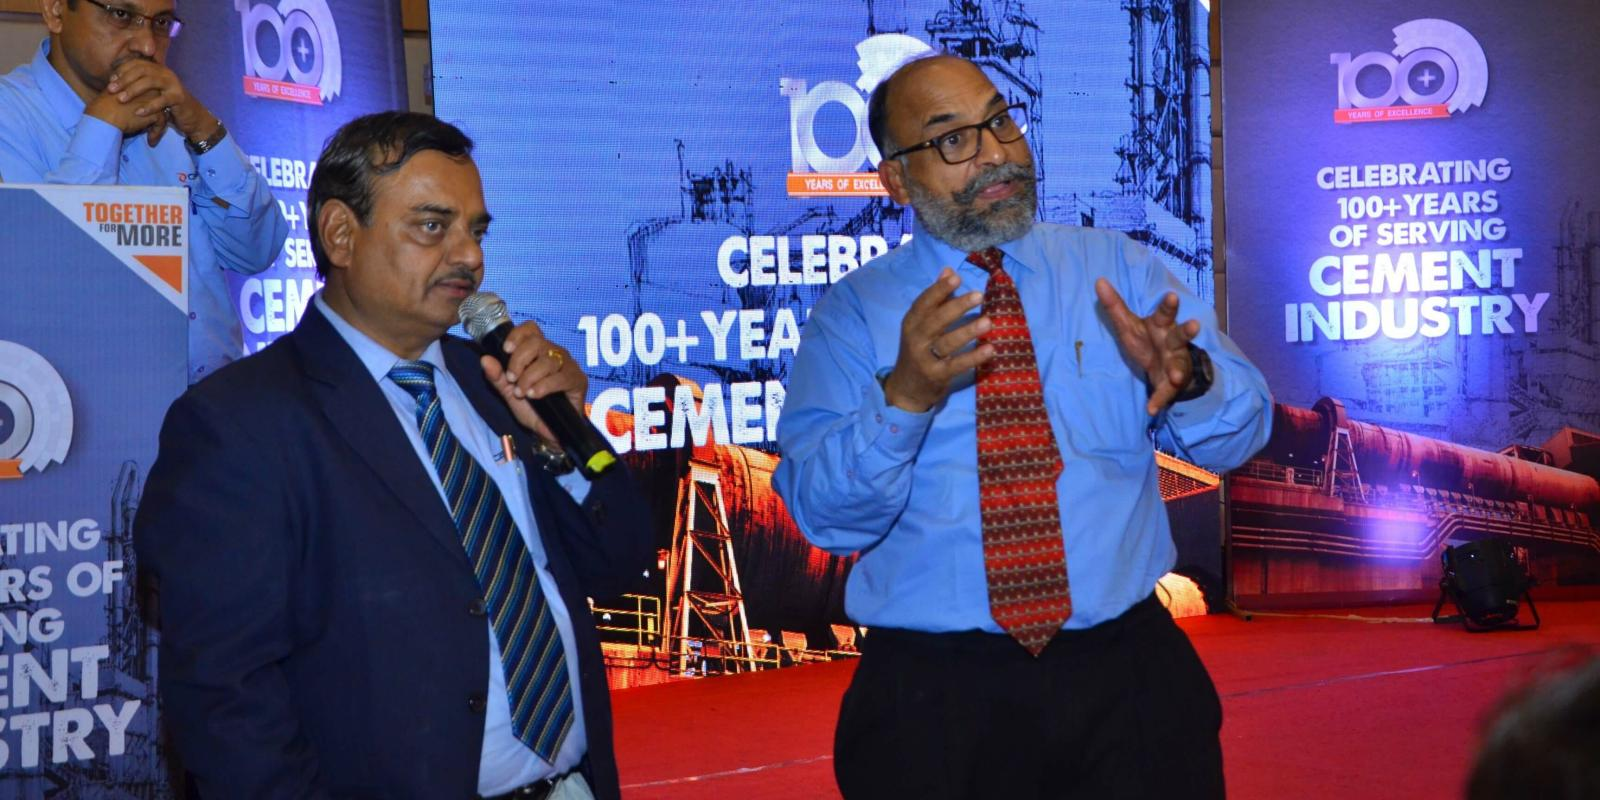 Cement Customer Day celebrated in India by Calderys